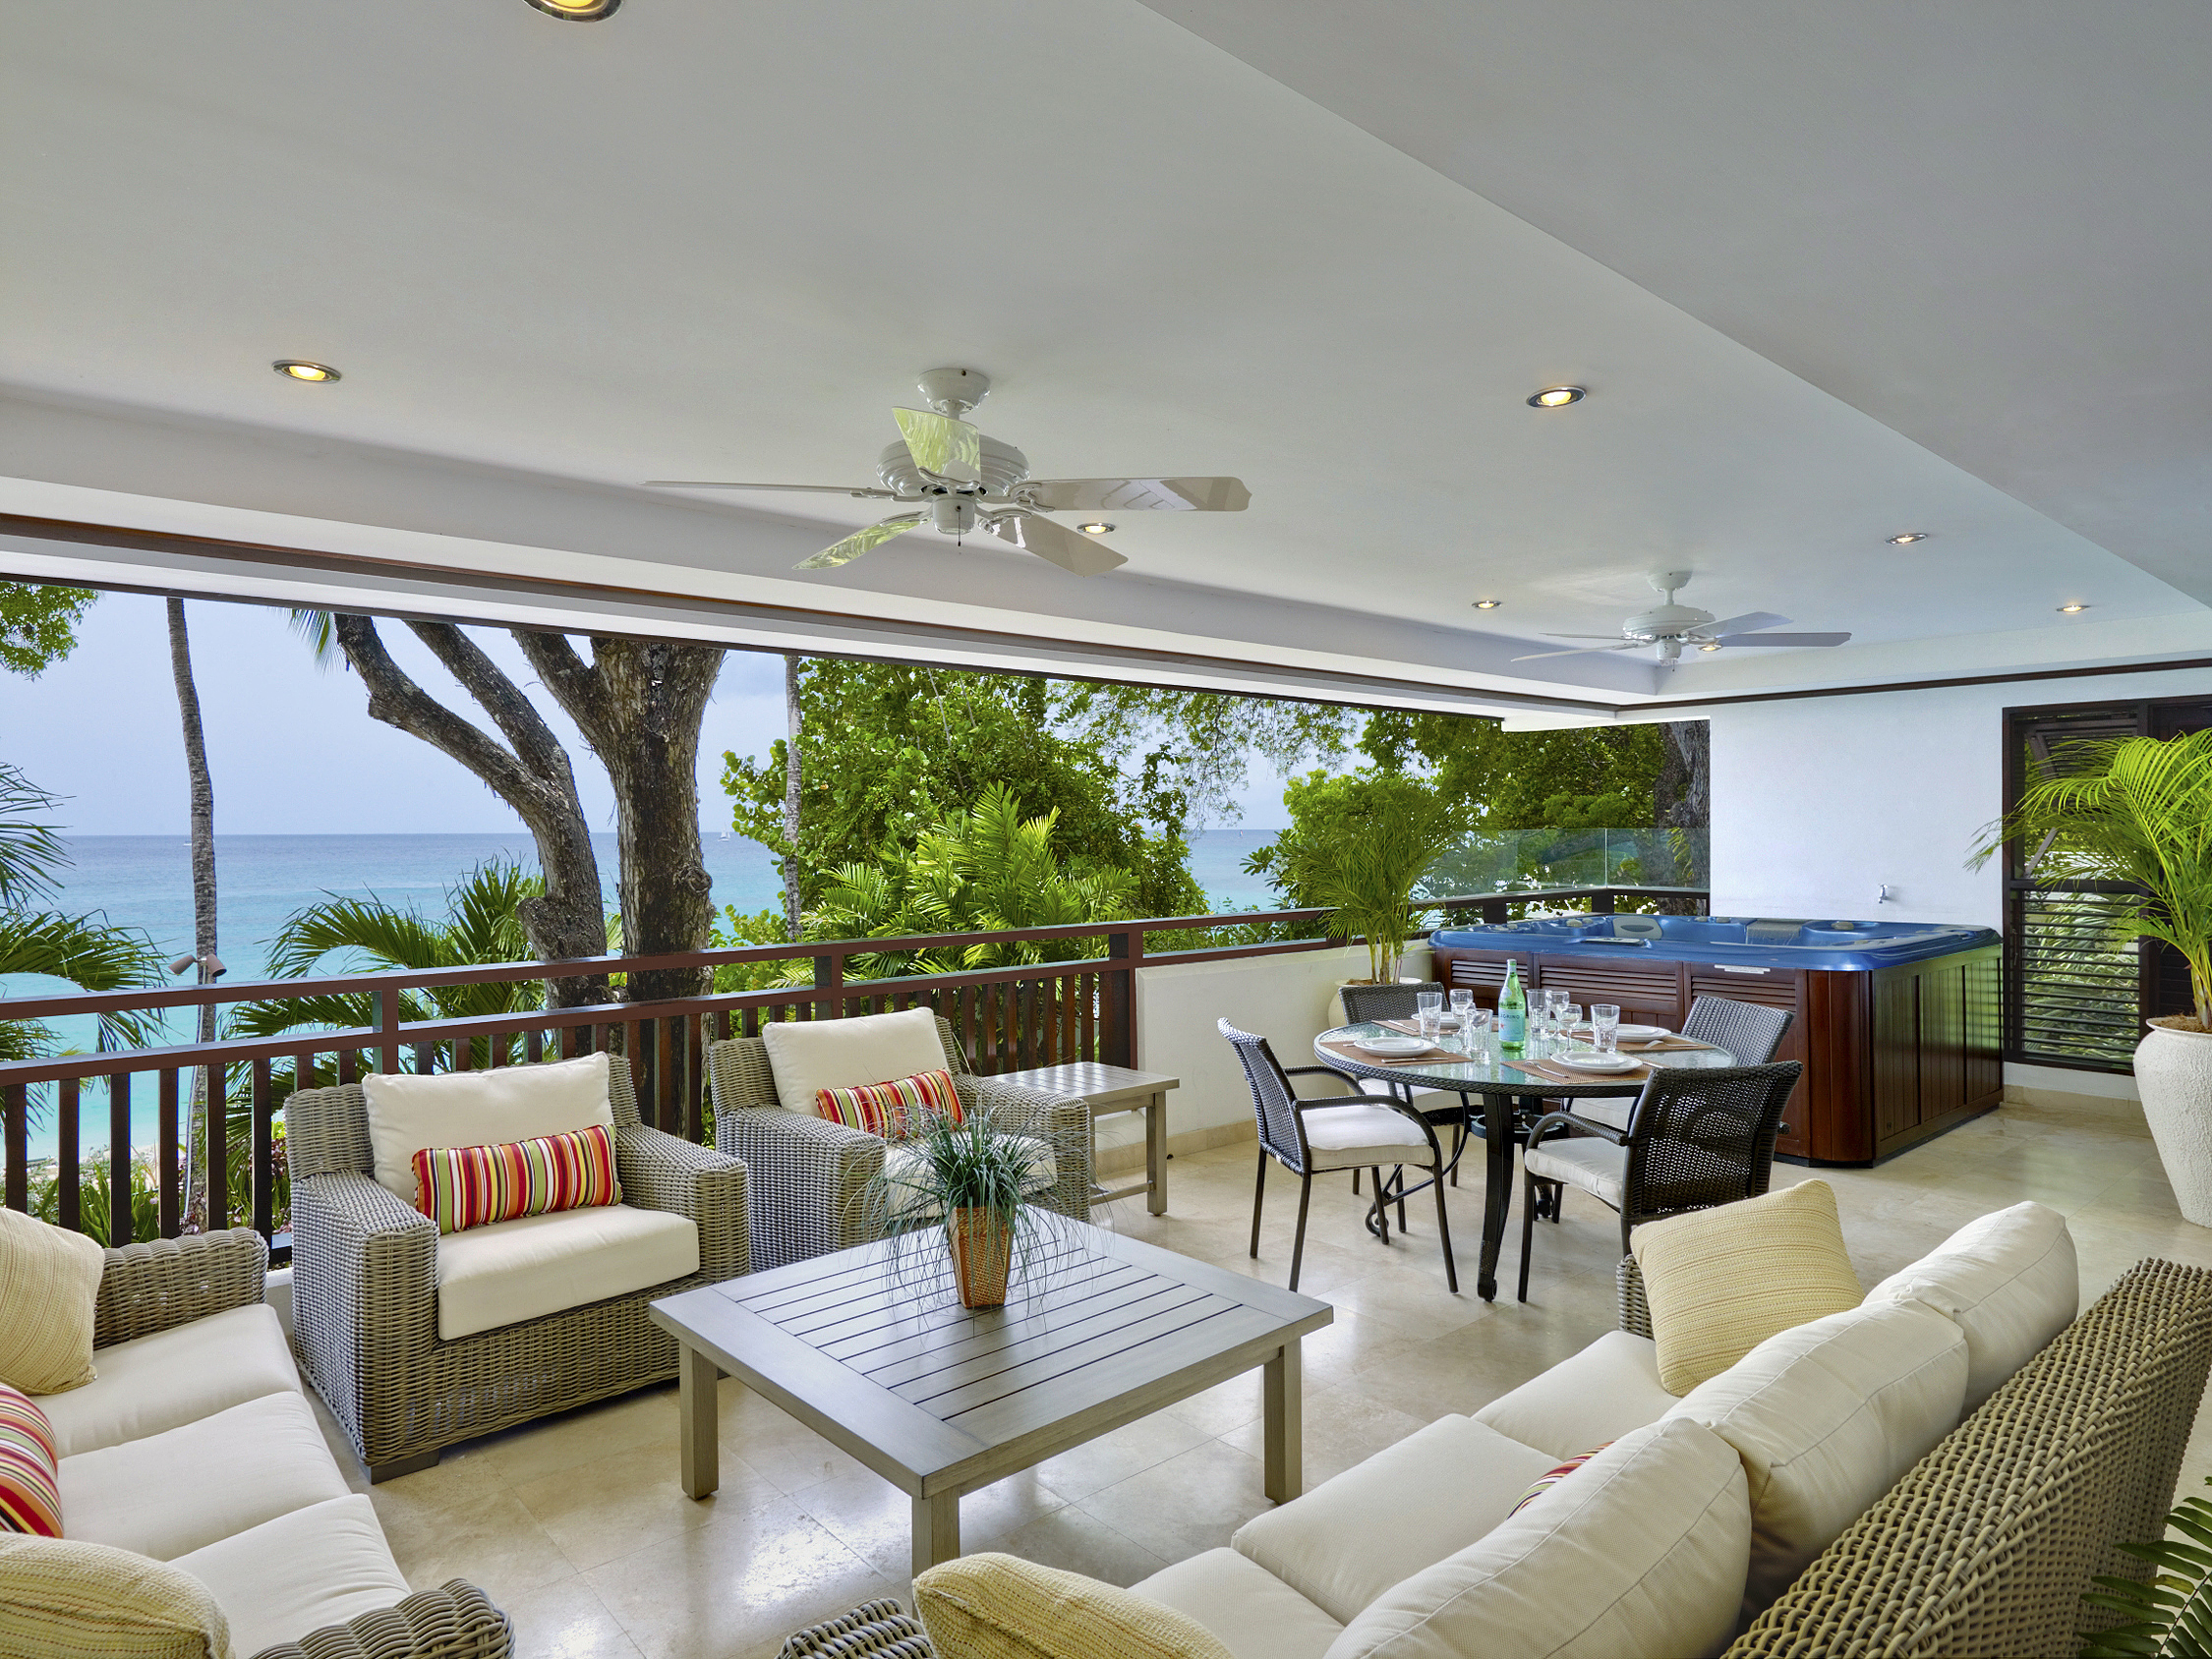 Other Residential for Sale at Coral Cove 6, The Ivy Other Saint James, Saint James Barbados